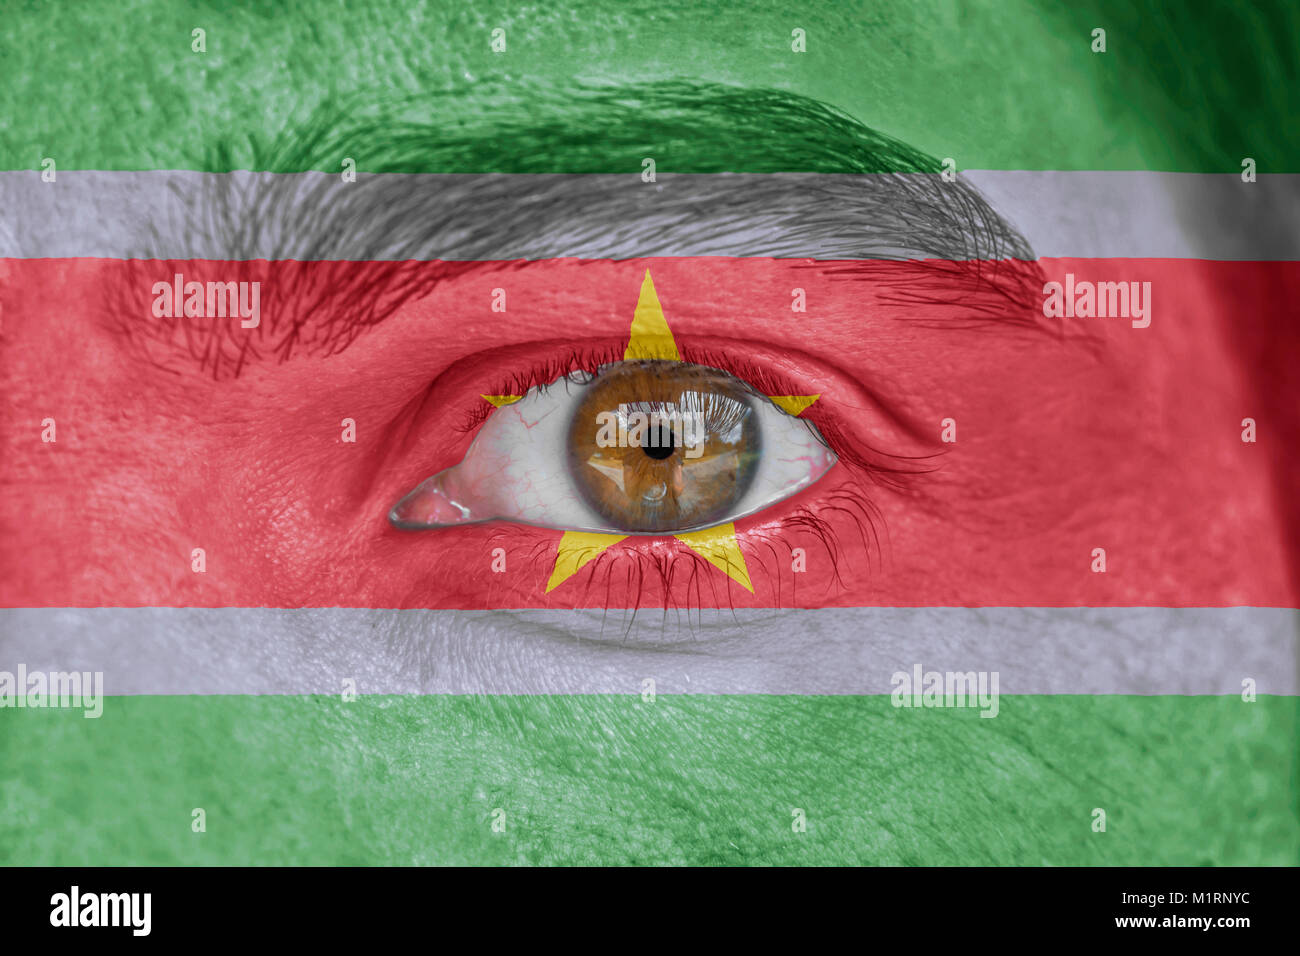 Human face and eye painted with flag of Suriname - Stock Image